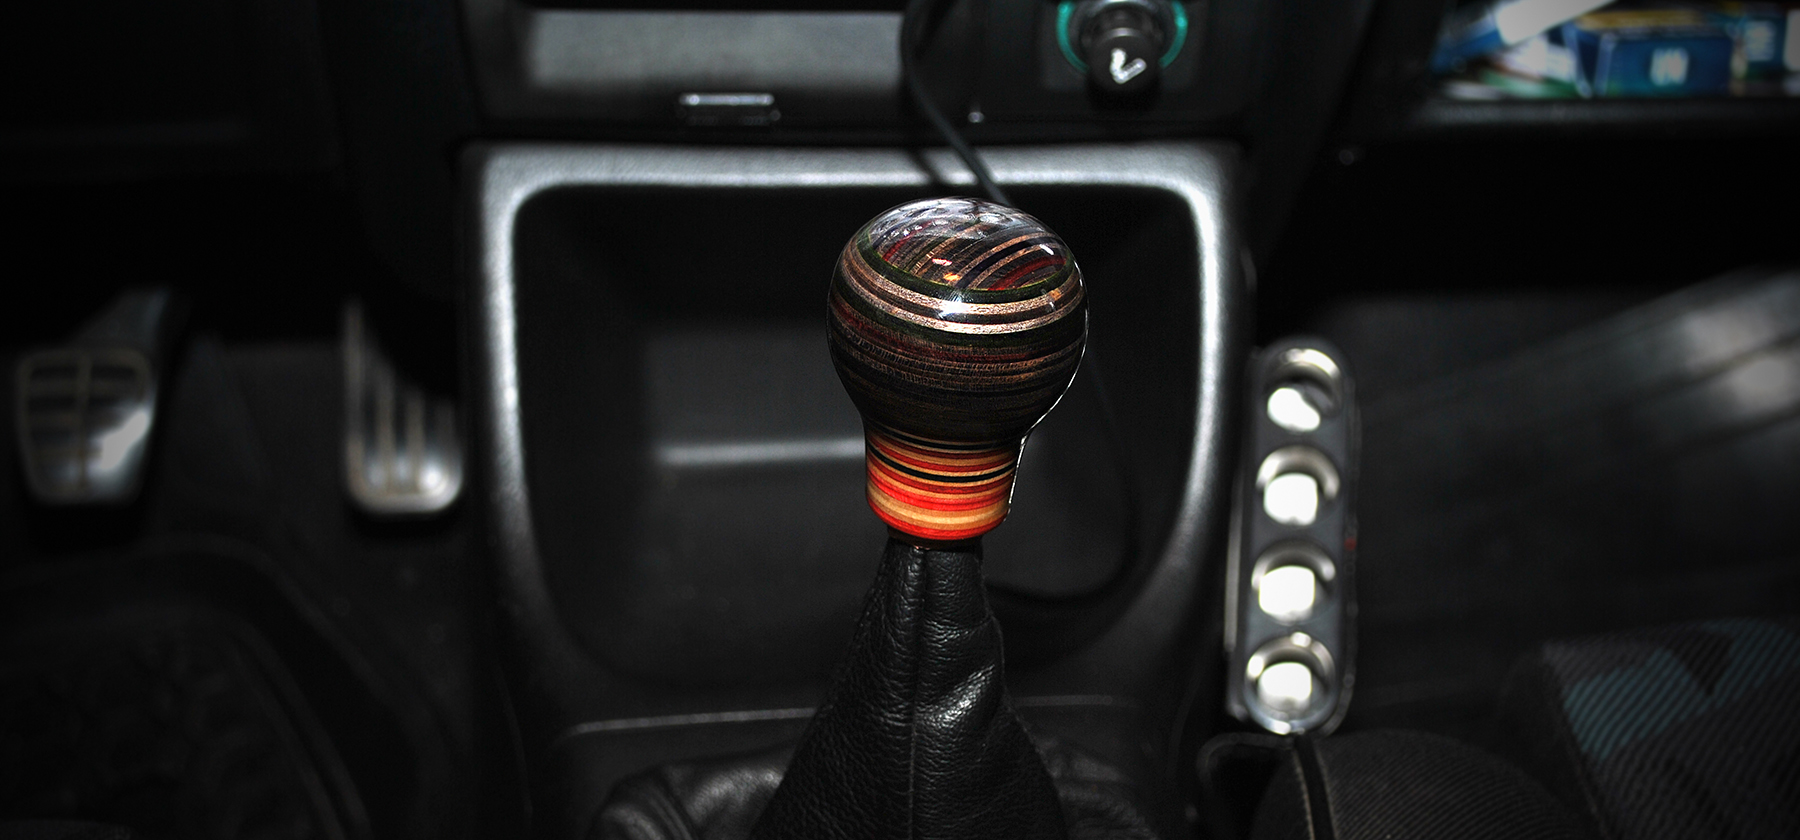 VW golf shift knob